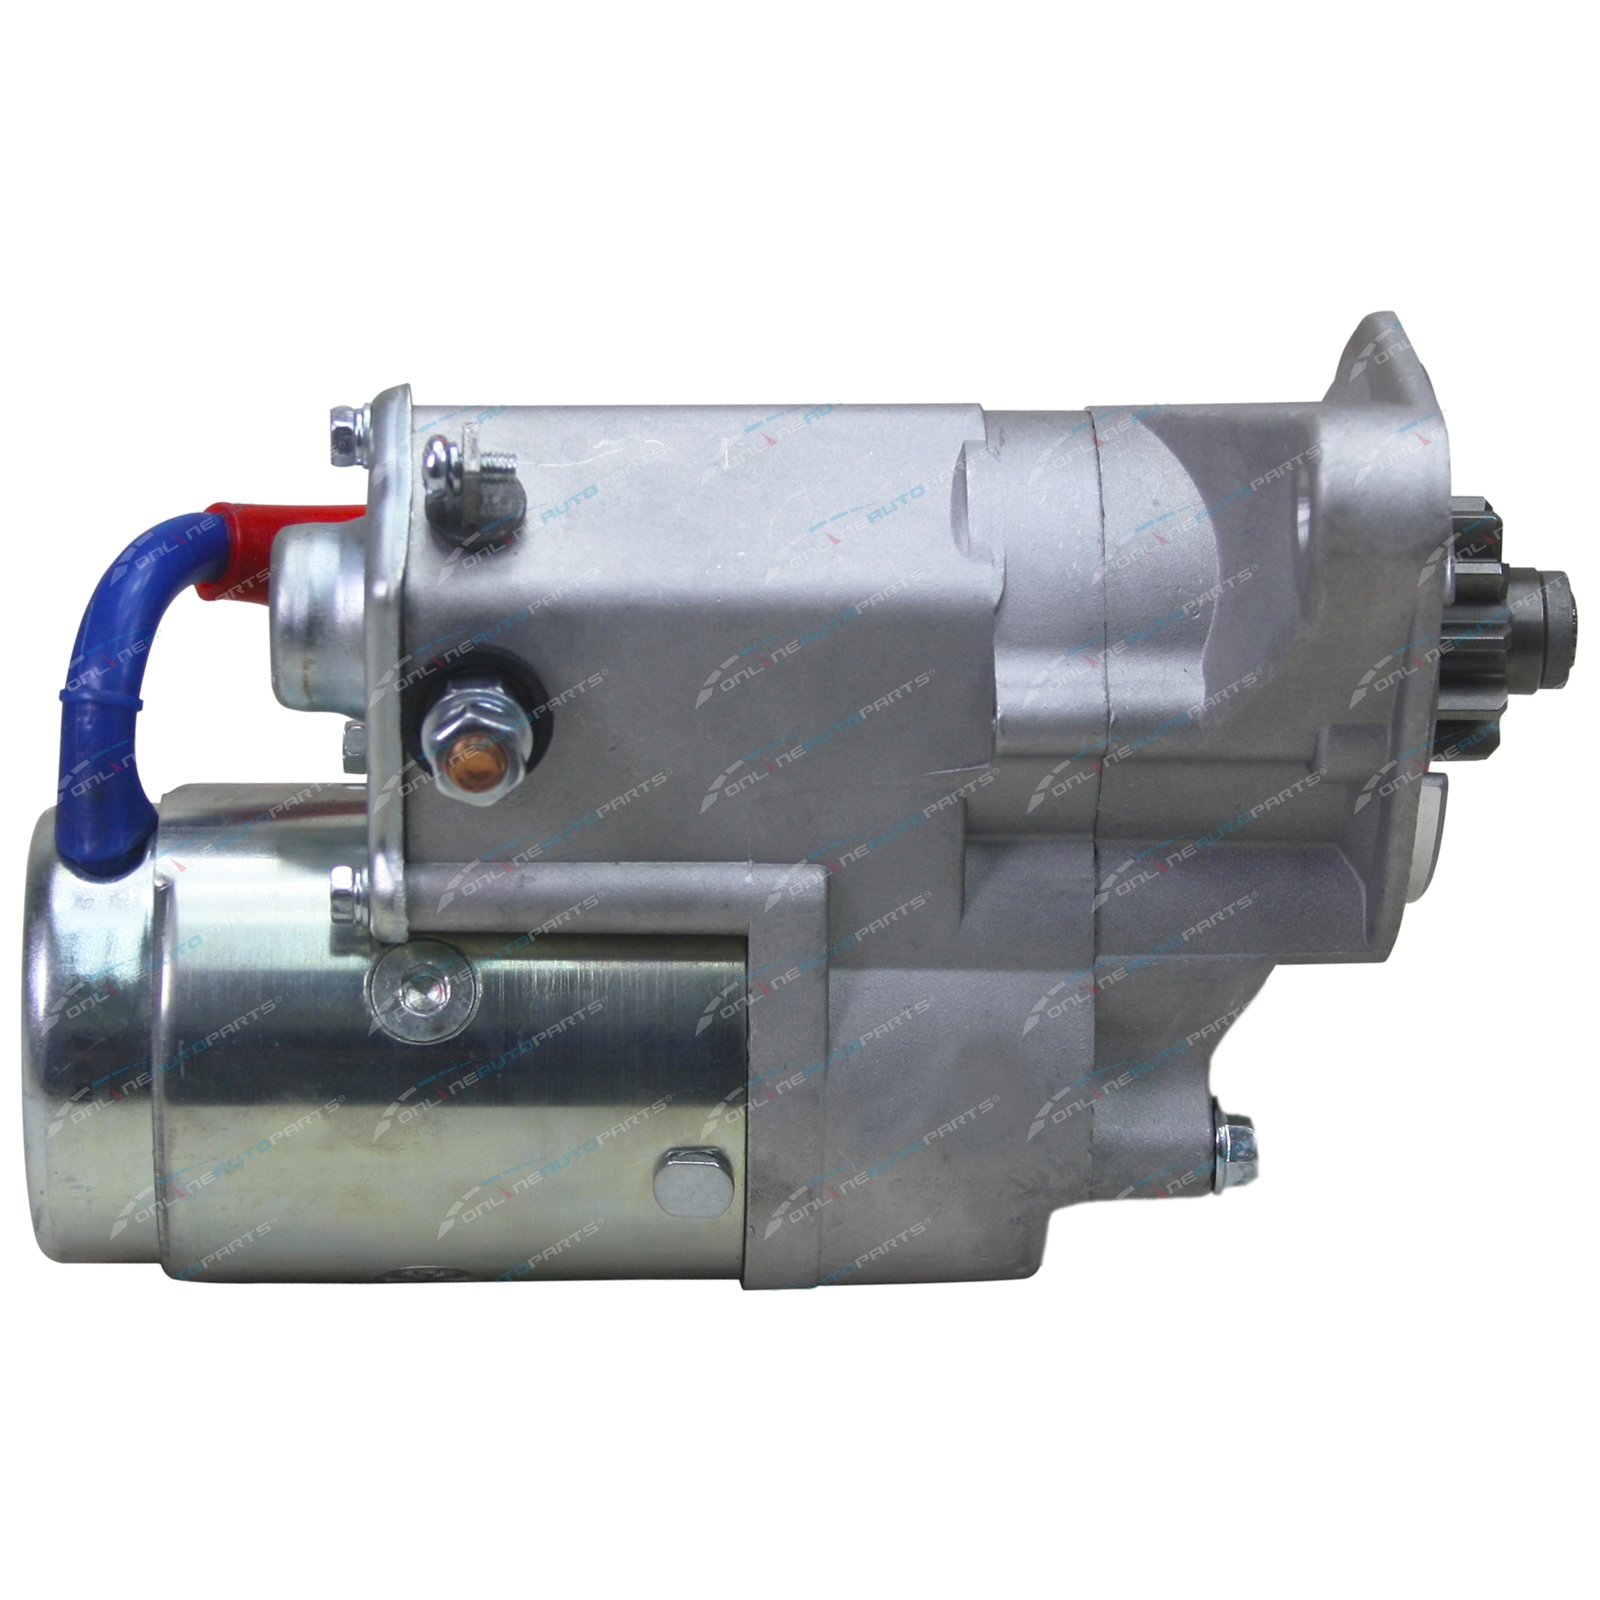 Starter motor aftermarket oem replacement onlineautoparts for Match motors inc whitefield me